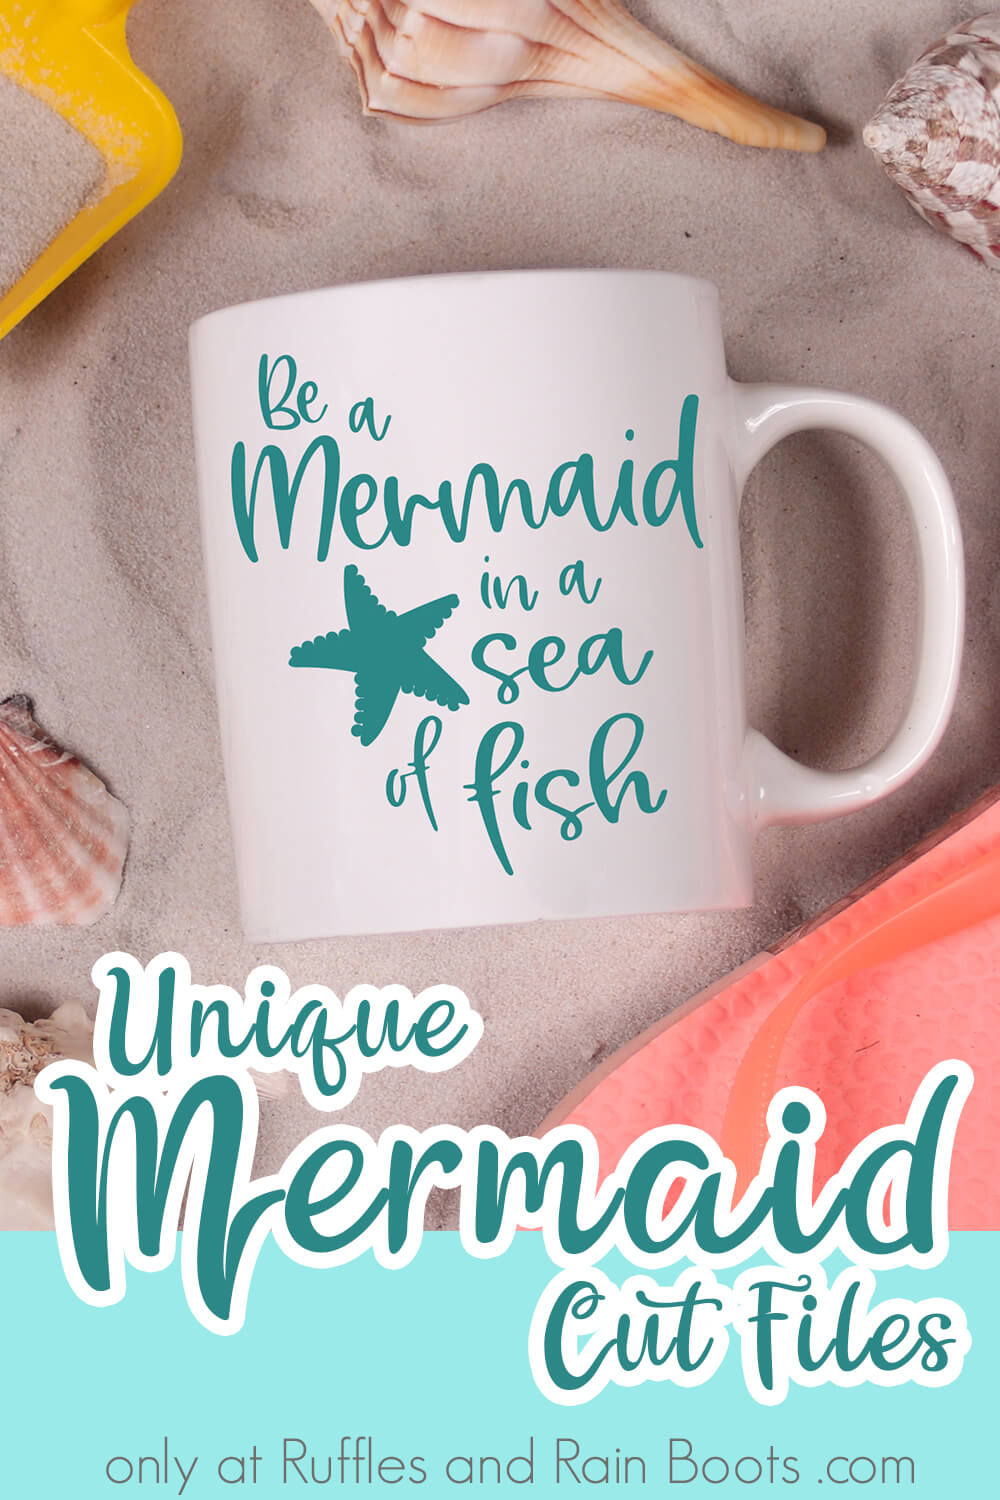 Be a Mermaid in a Sea of Fish free mermaid cut file on mug on a bed of sand with text which reads unique mermaid cut files